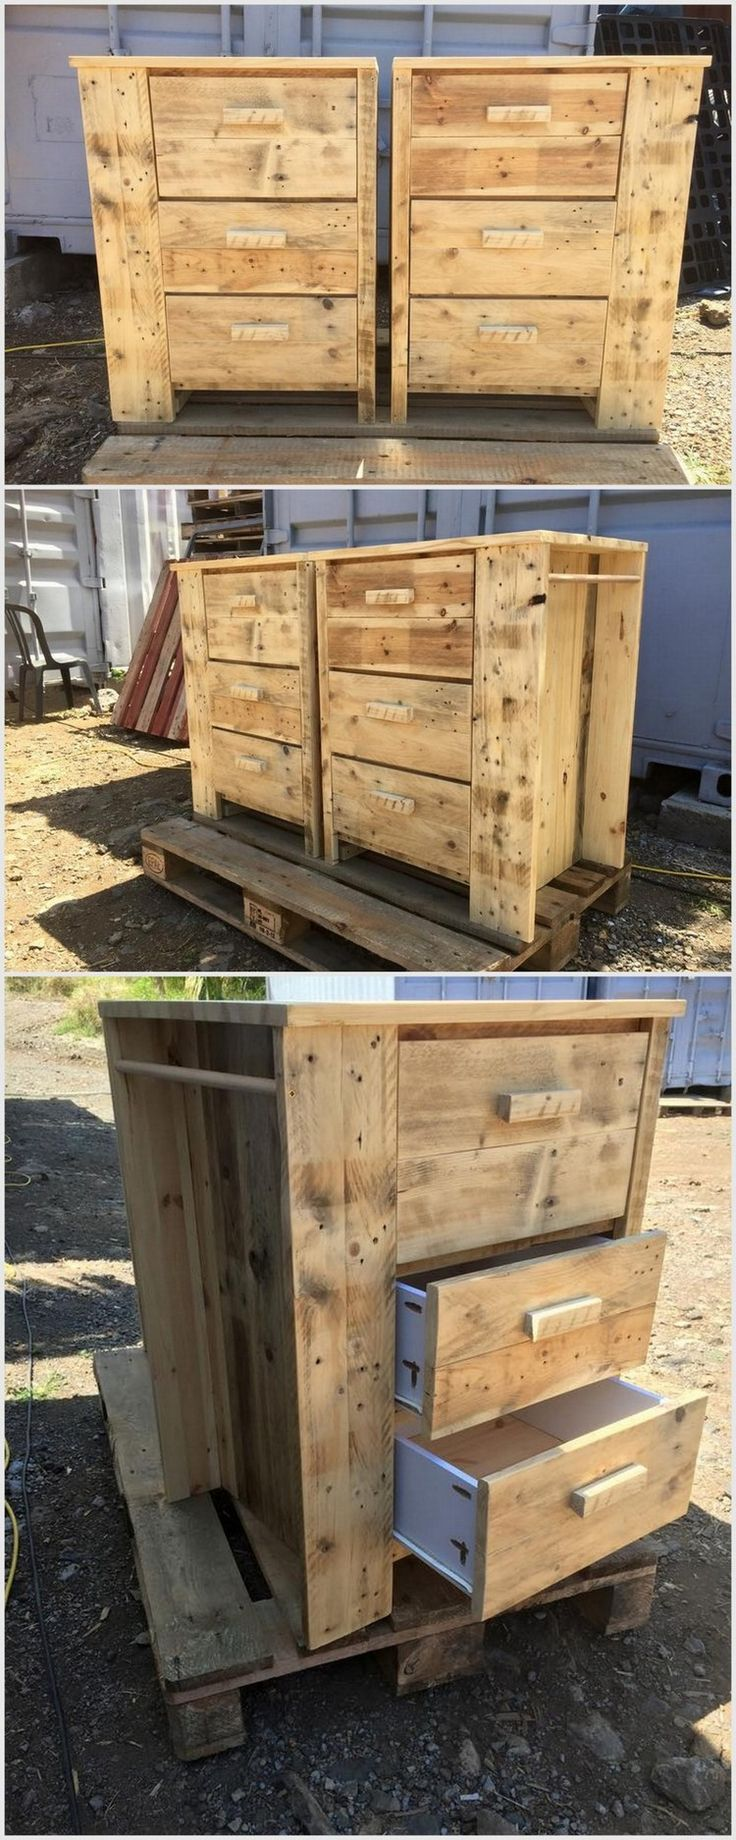 475 best images about pallet tables on pinterest - Palette recyclee ...